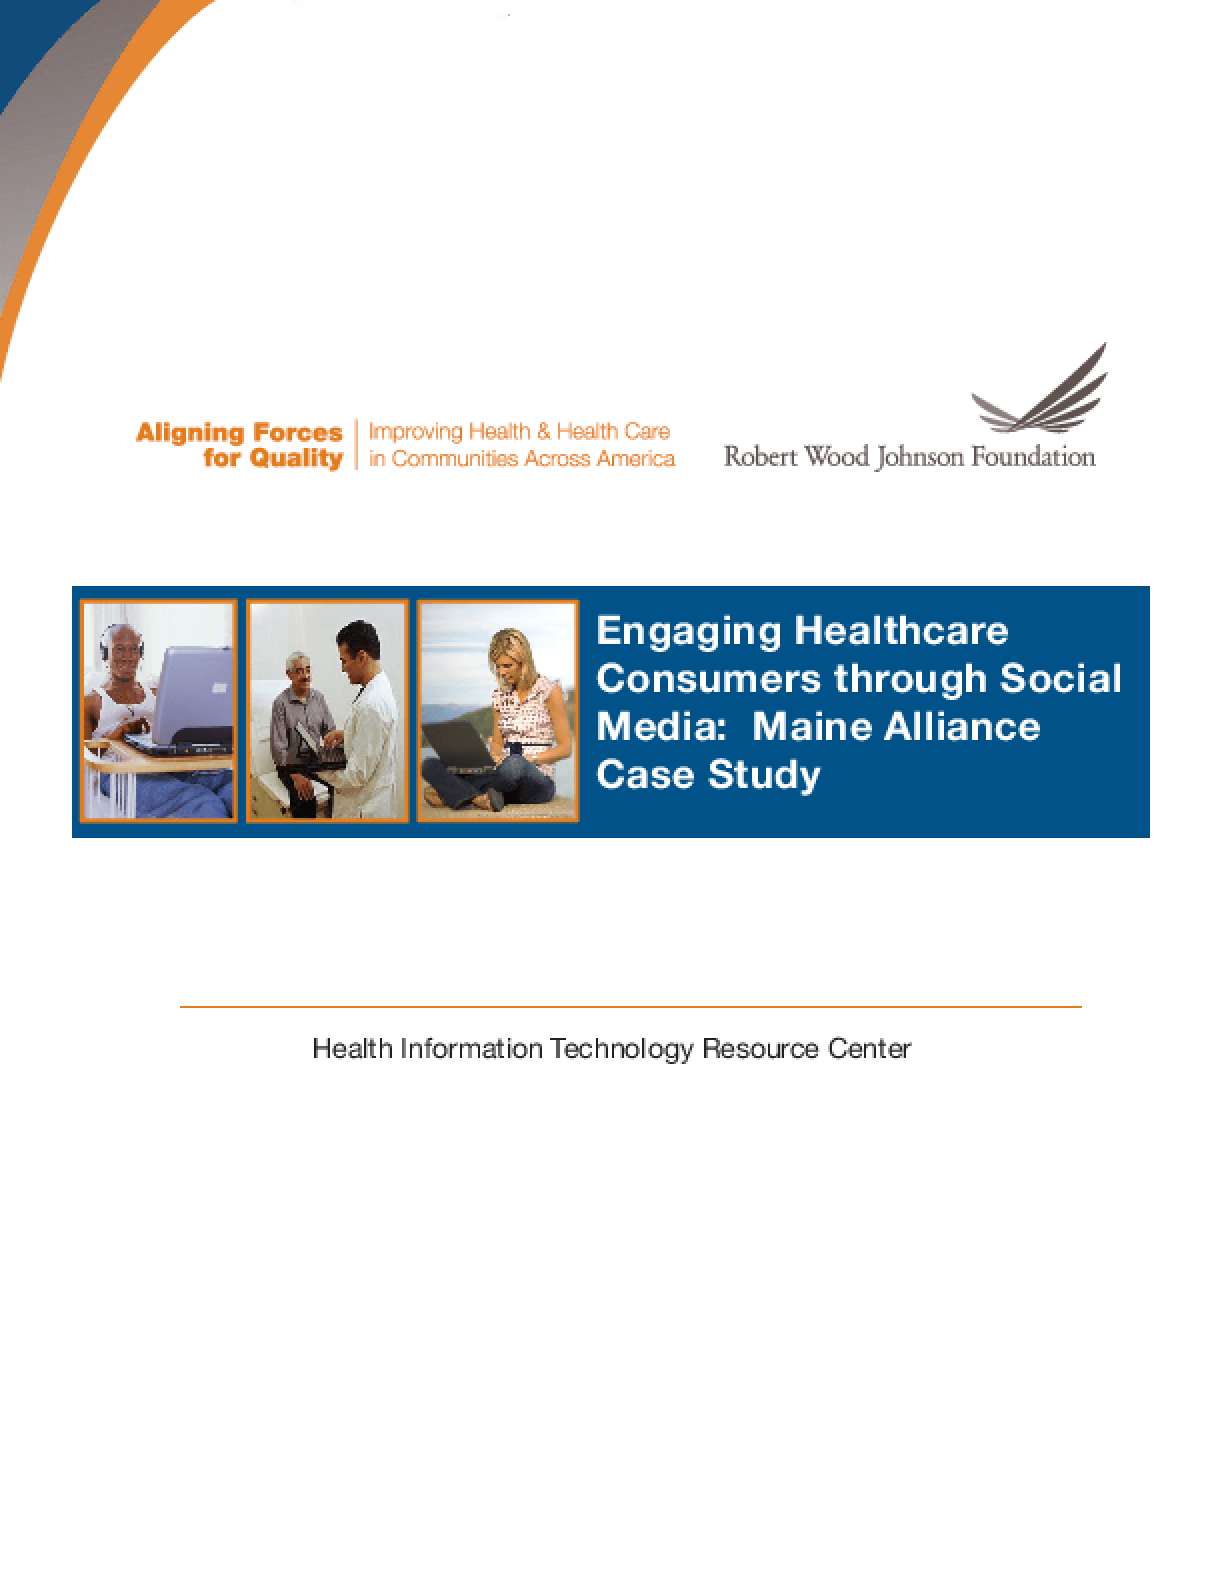 Aligning Forces for Quality: Engaging Healthcare Consumers Through Social Media: Maine Alliance Case Study